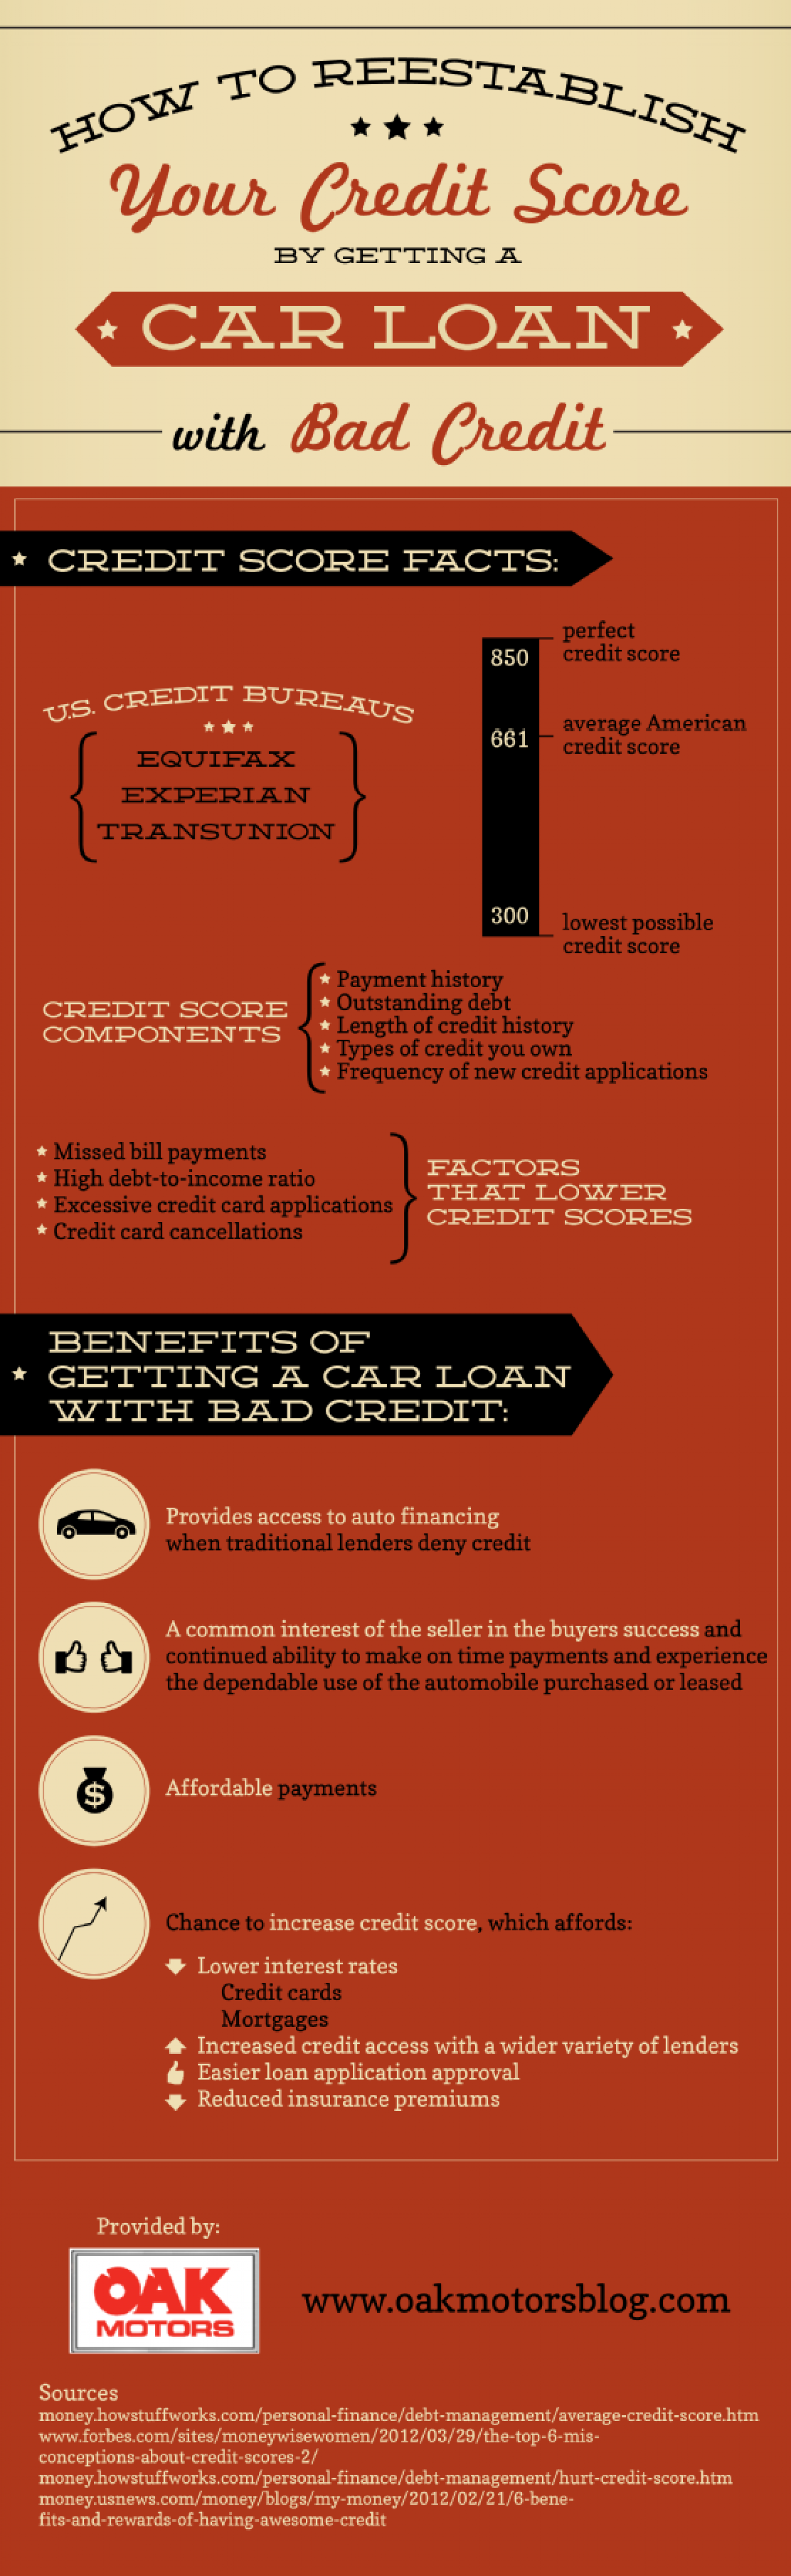 How to Reestablish Your Credit Score by Getting a Car Loan Infographic